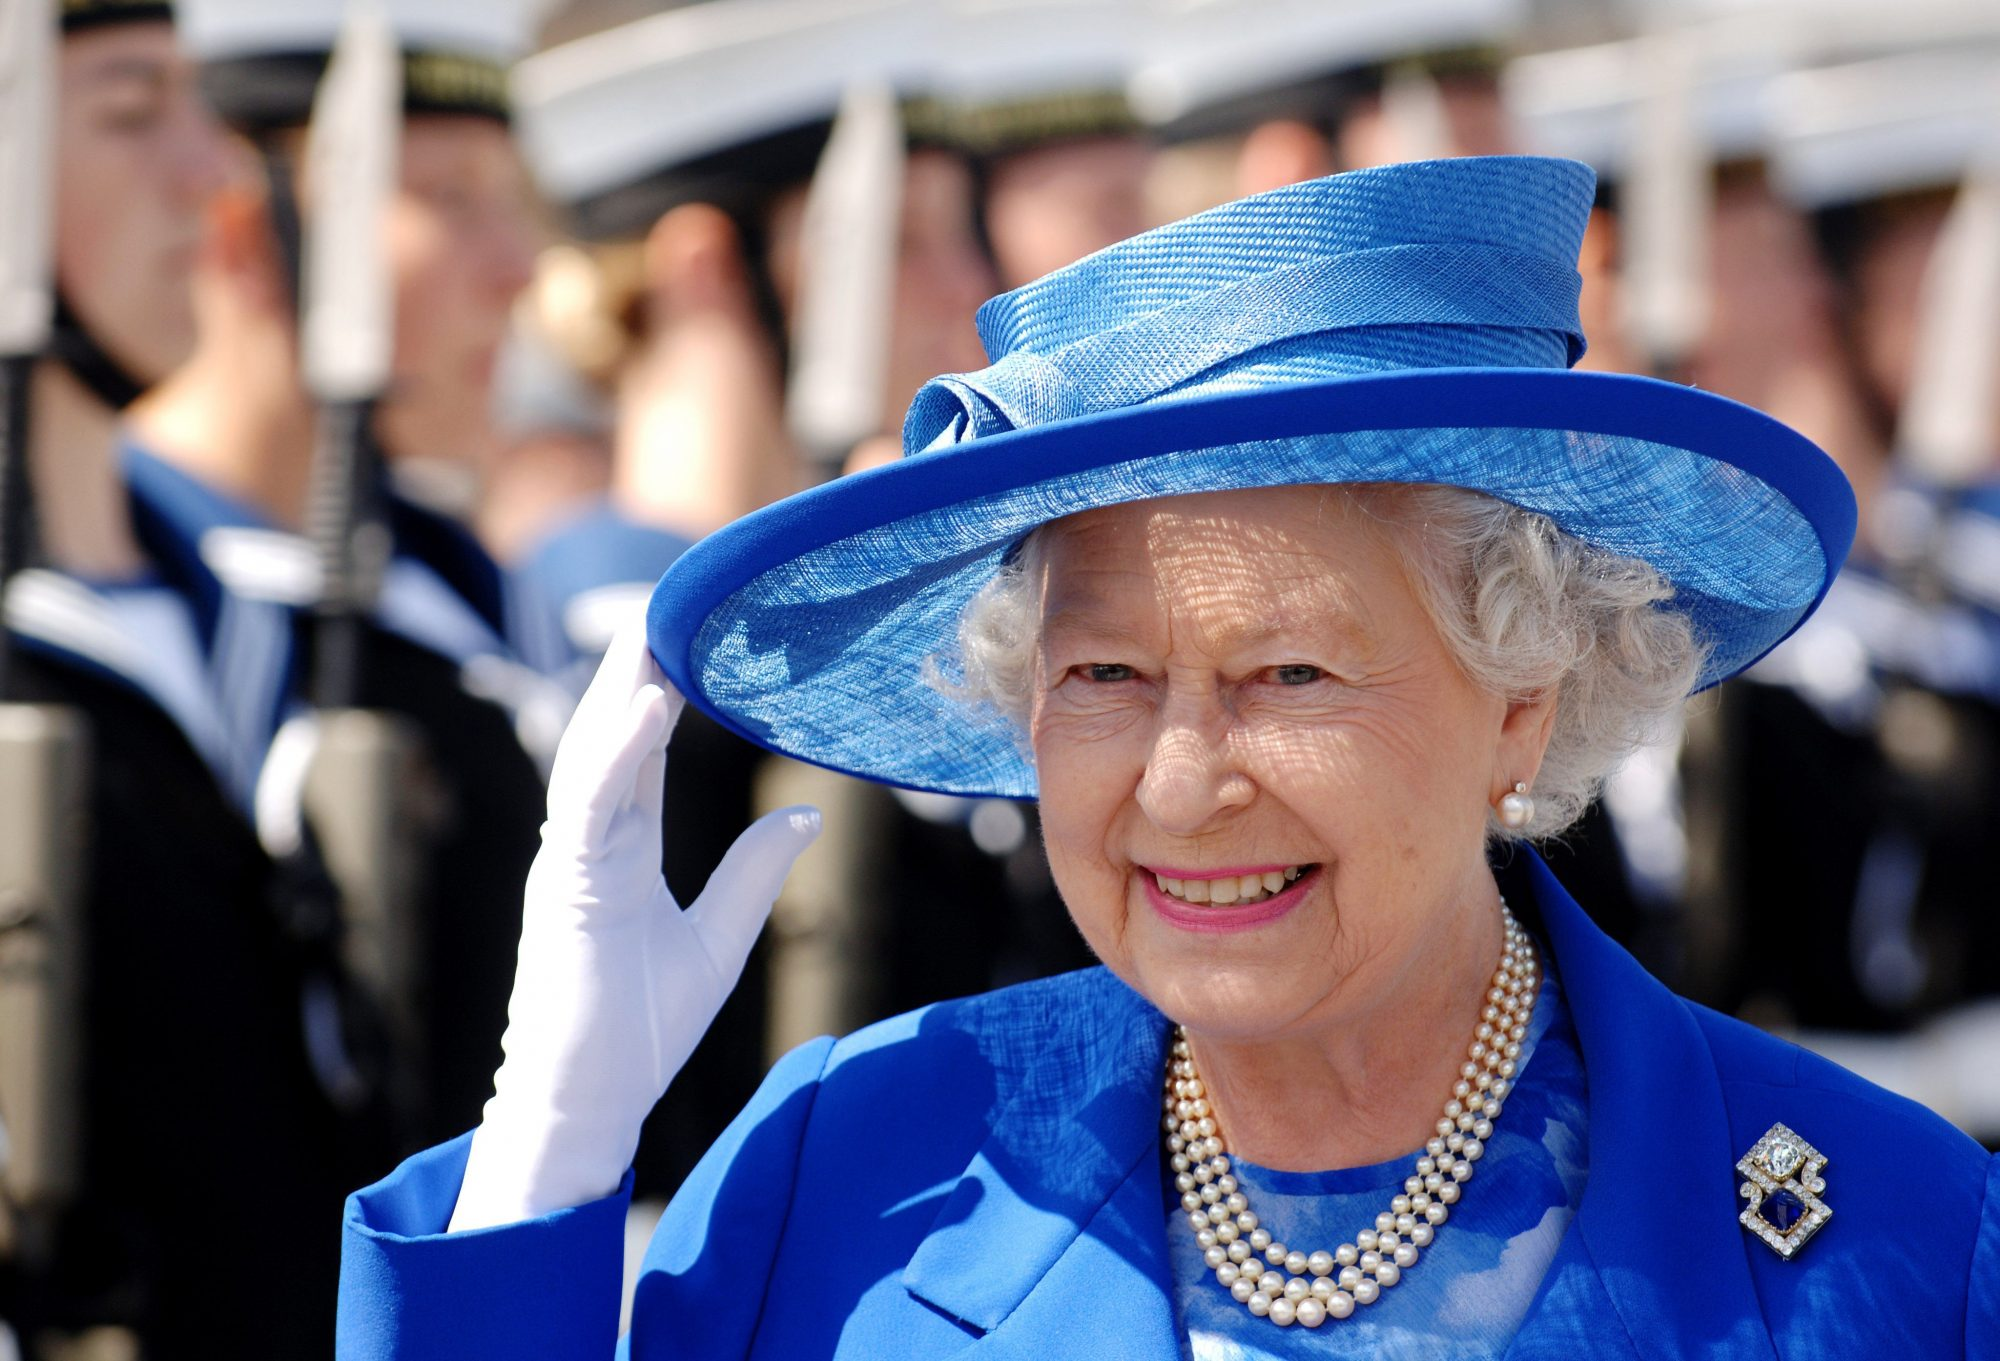 Why the Queen of England Doesn't Need a Passport to Travel